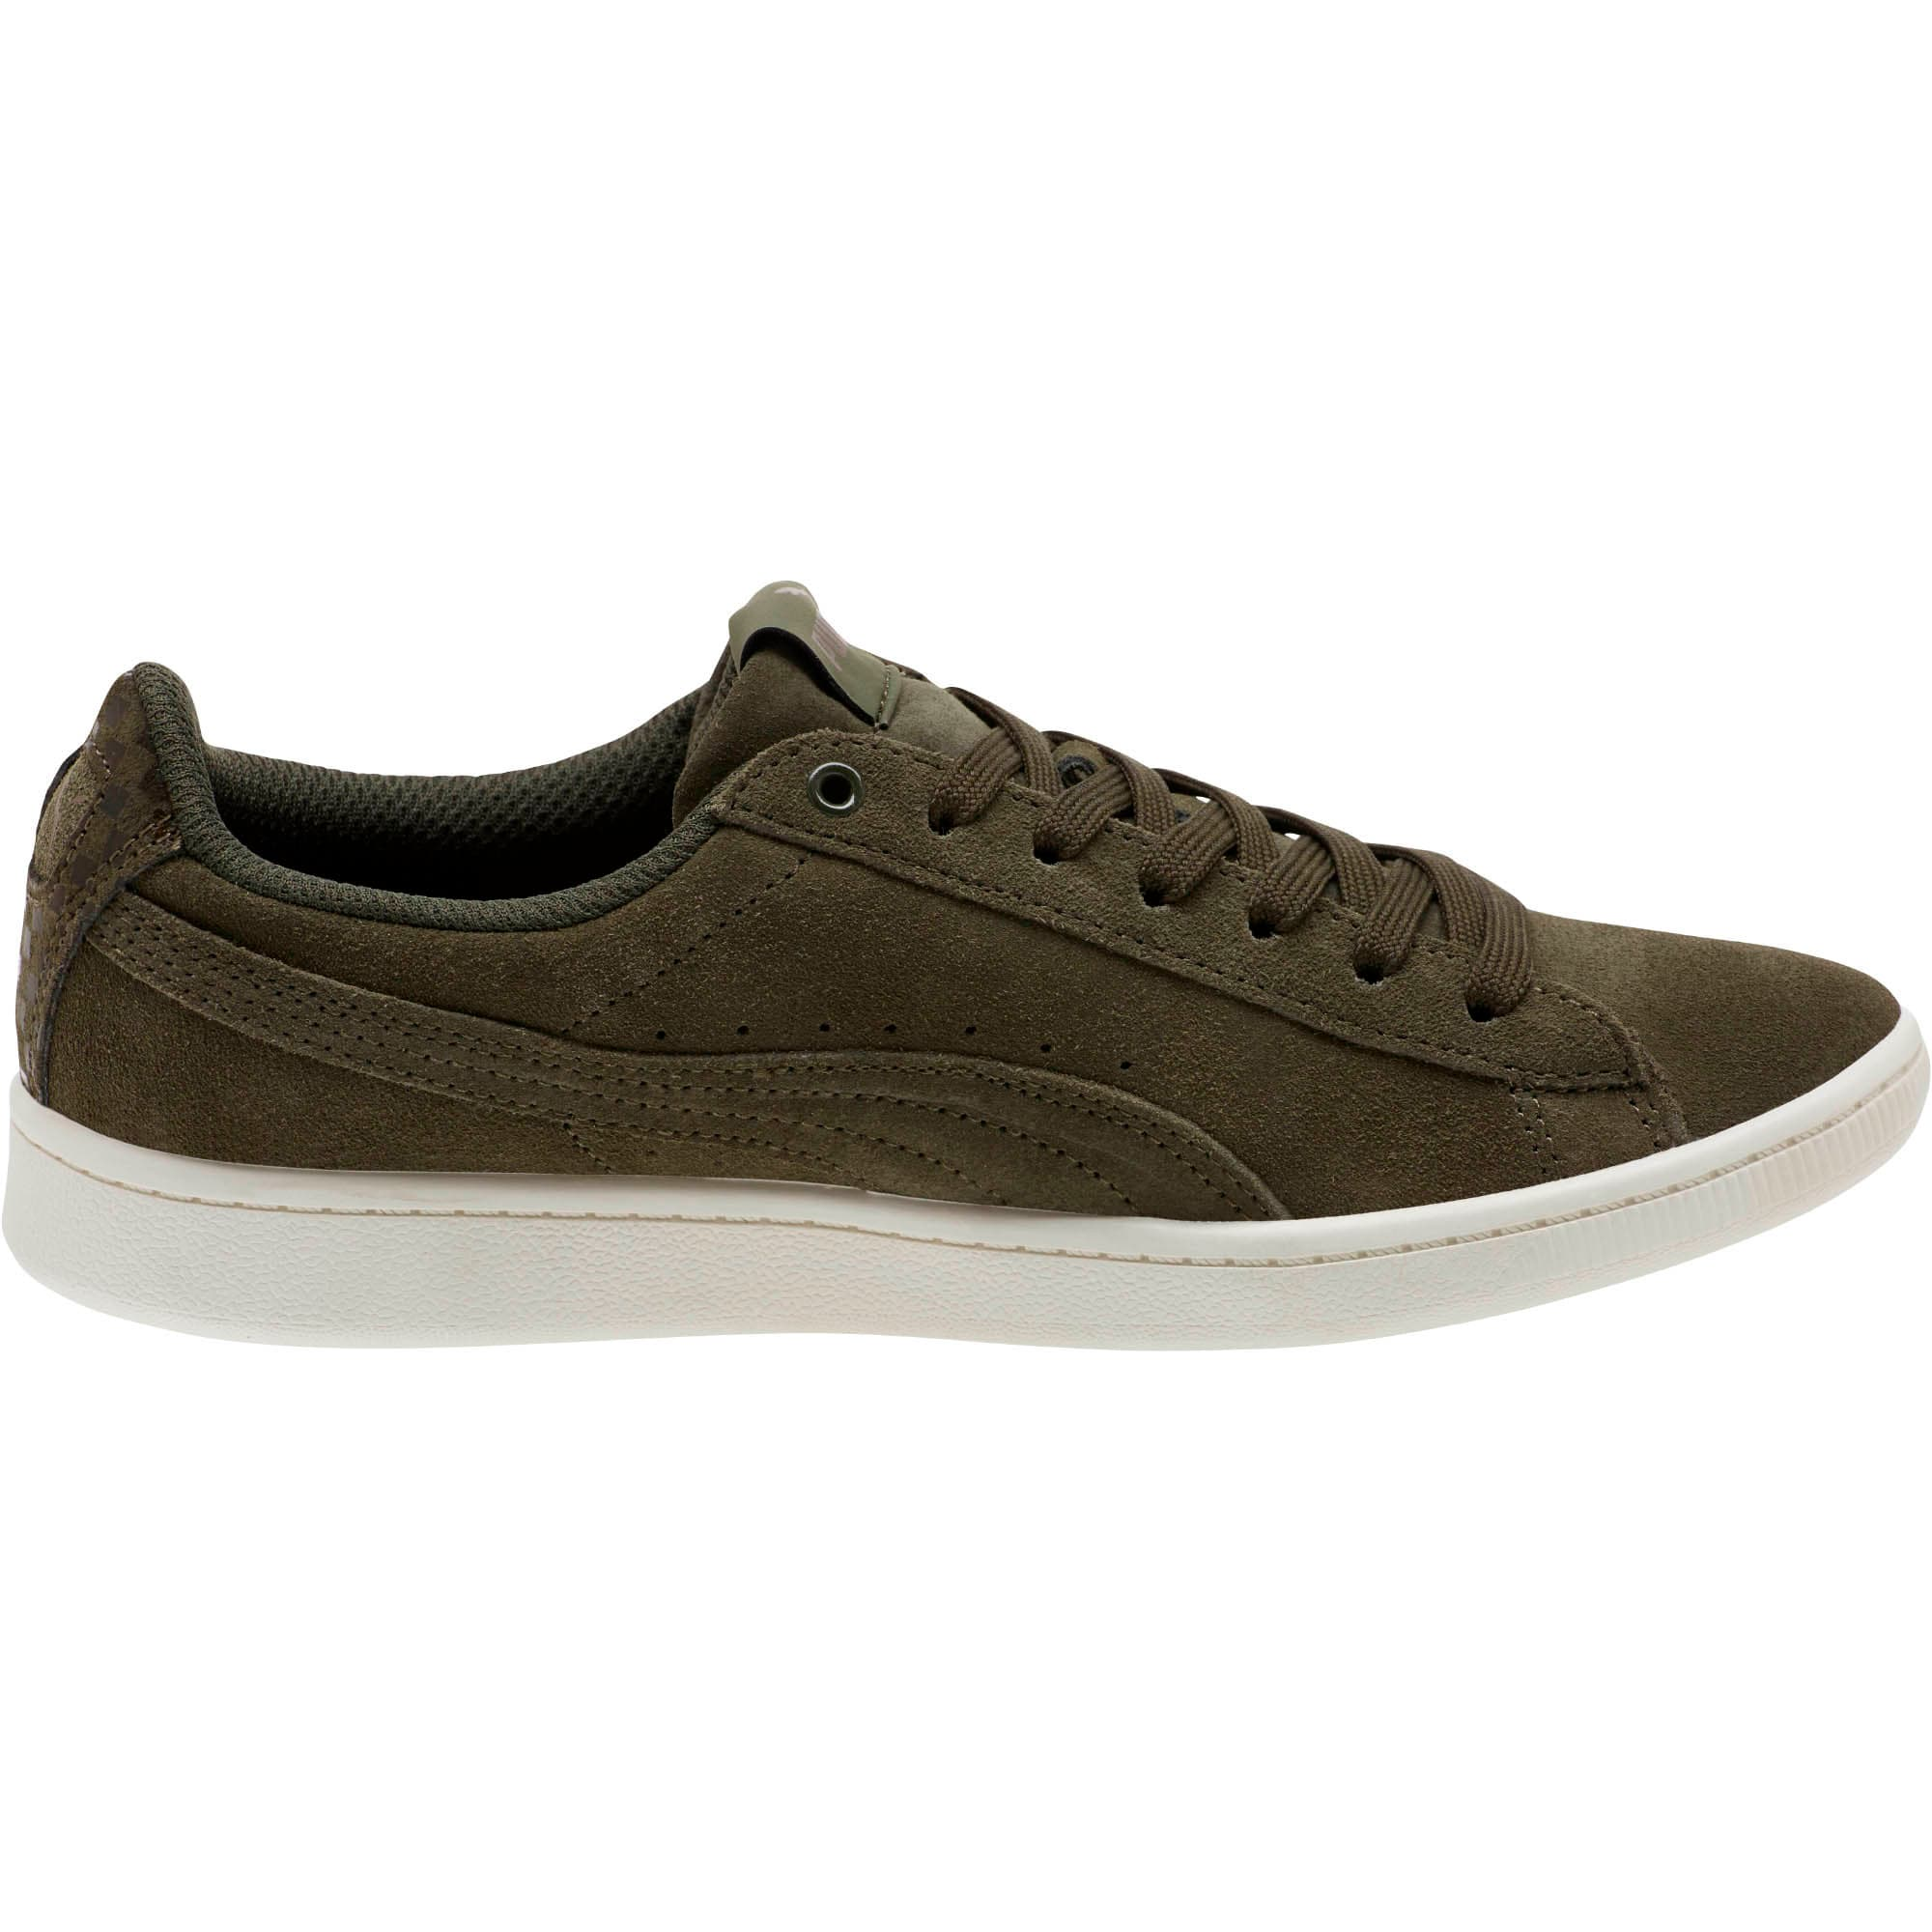 Thumbnail 3 of PUMA Vikky All-Over Suede Women's Sneakers, Forest Night-Metallic Bronze, medium